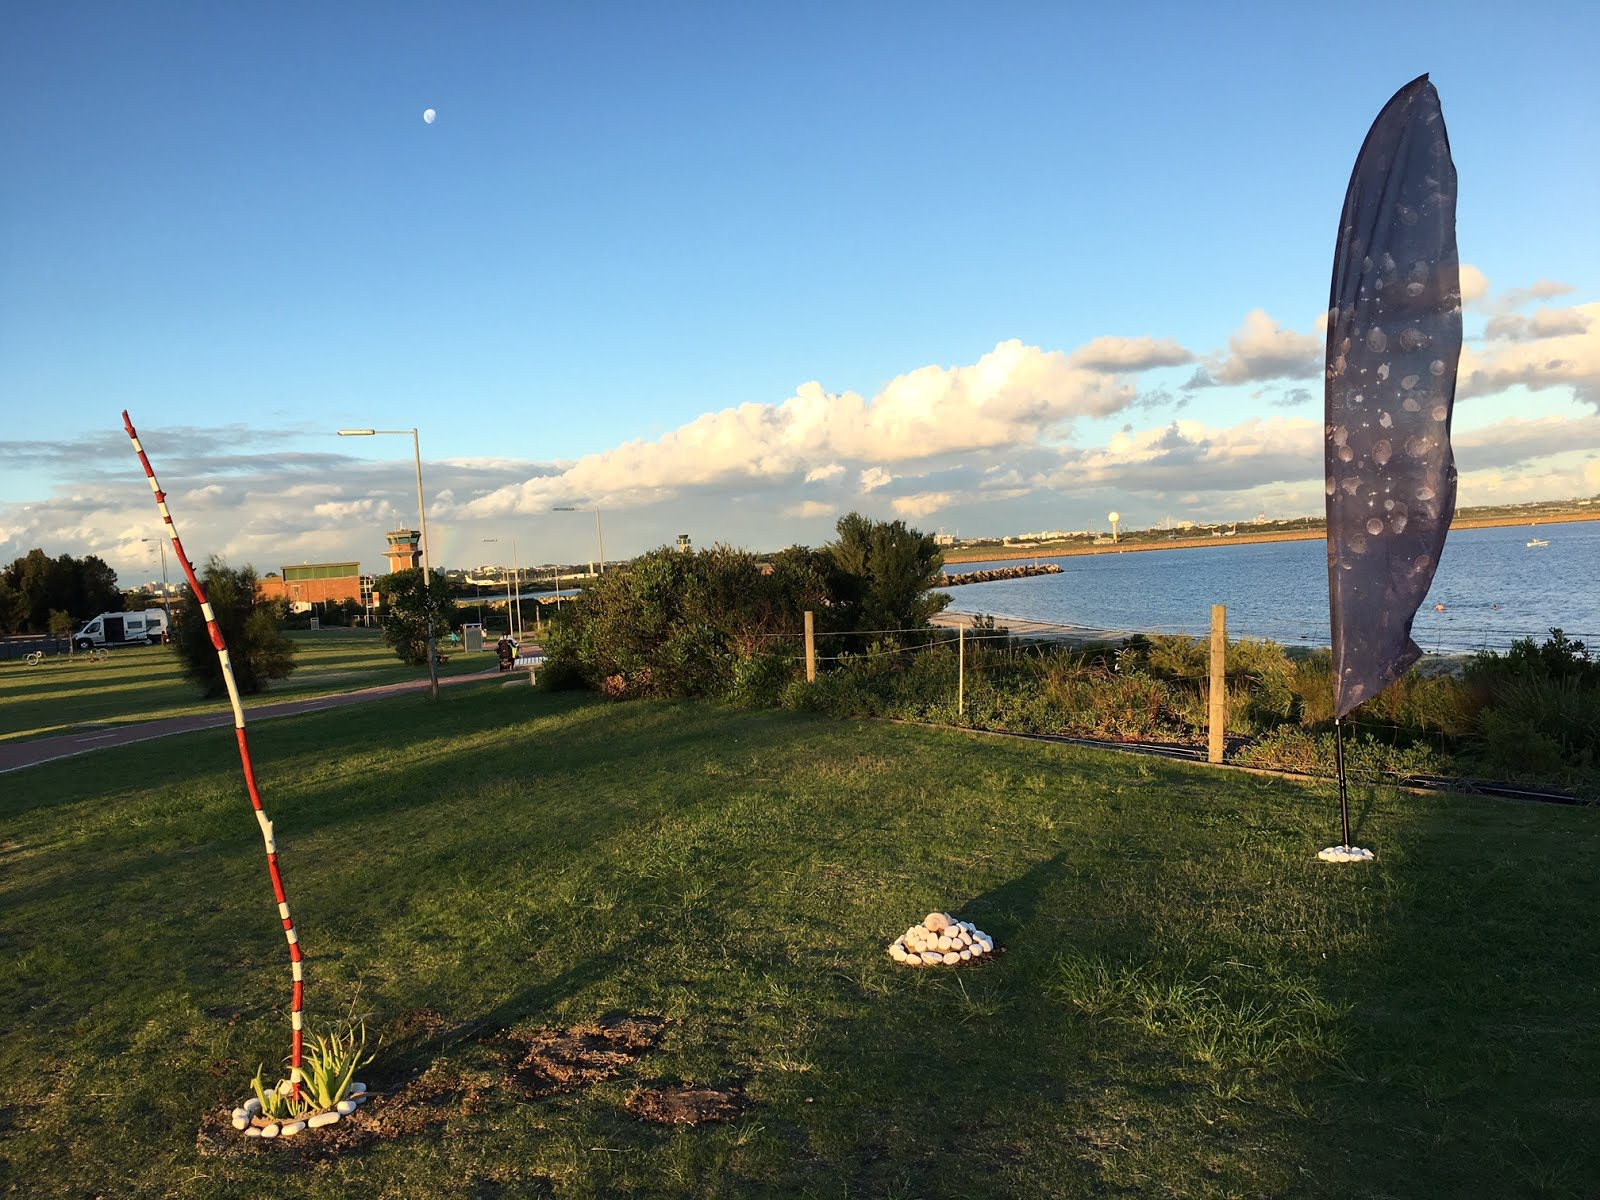 Sculptures at Bayside Art Festival 2017 in Kyeemagh